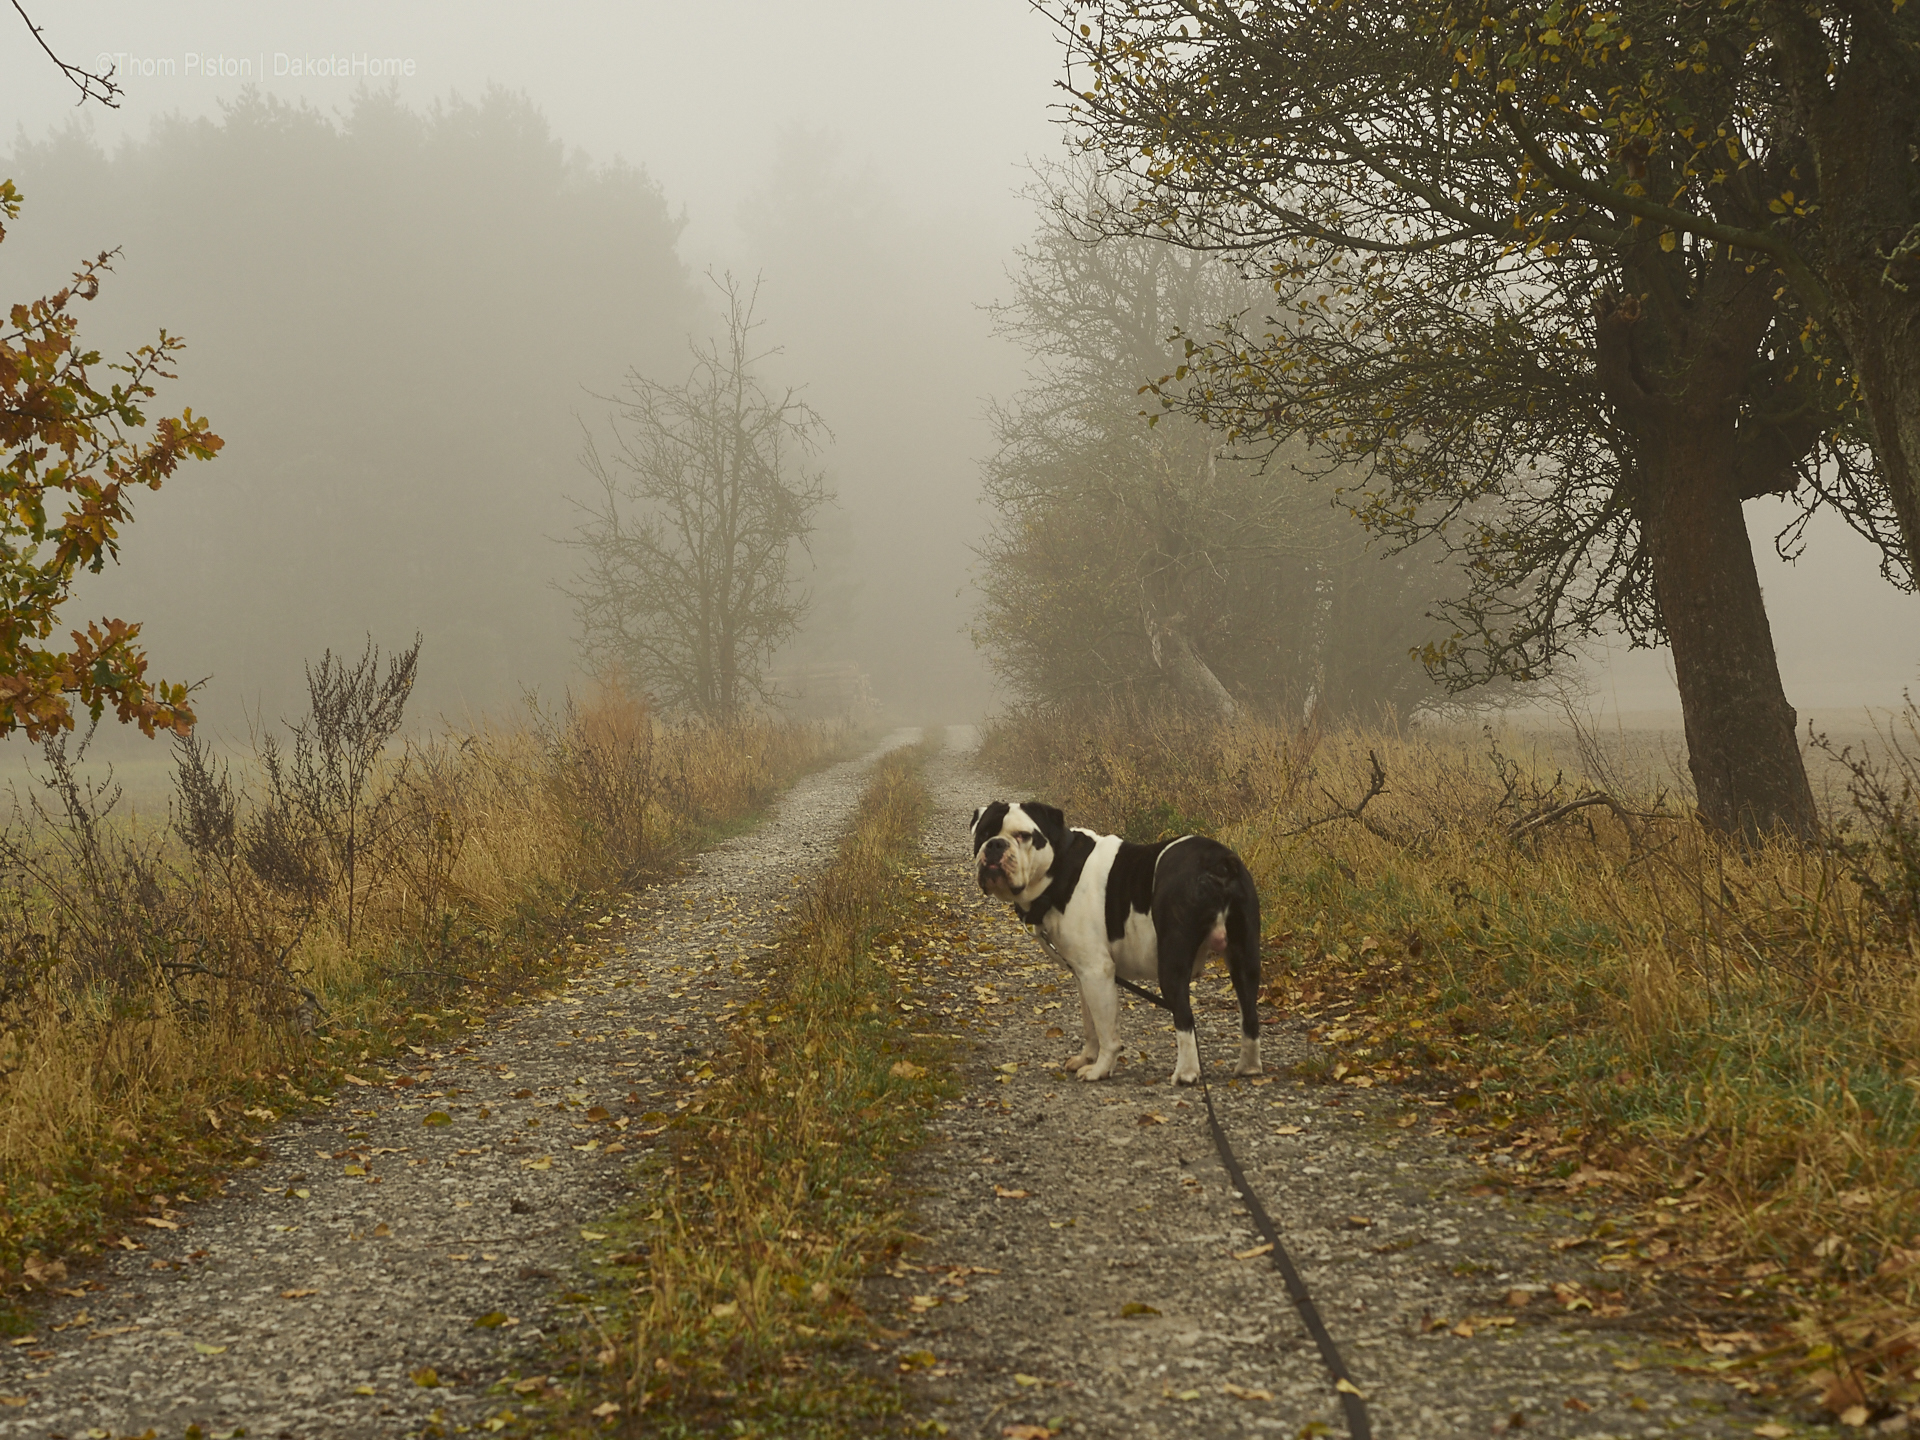 Mitte November, Bulldogge im Nebel in Brandenburg